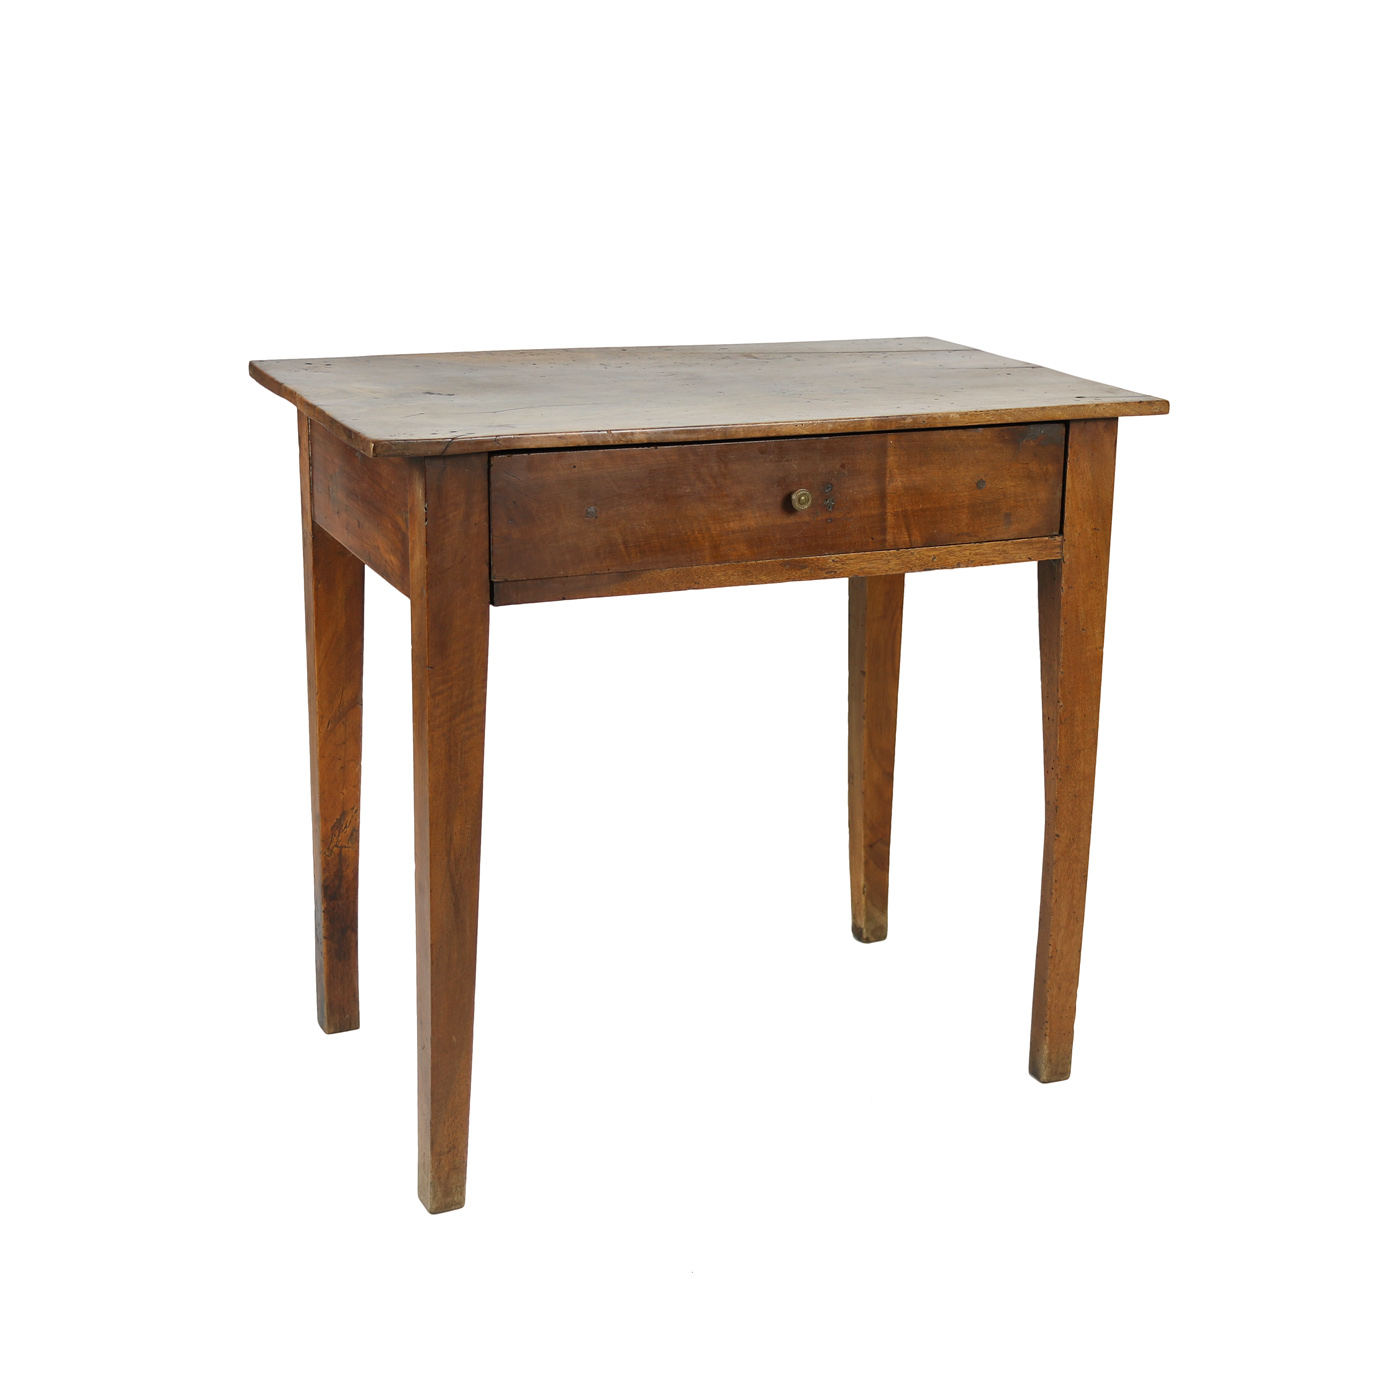 Garden Court Antiques, San Francisco   A Small French Walnut Side Table  With A Single